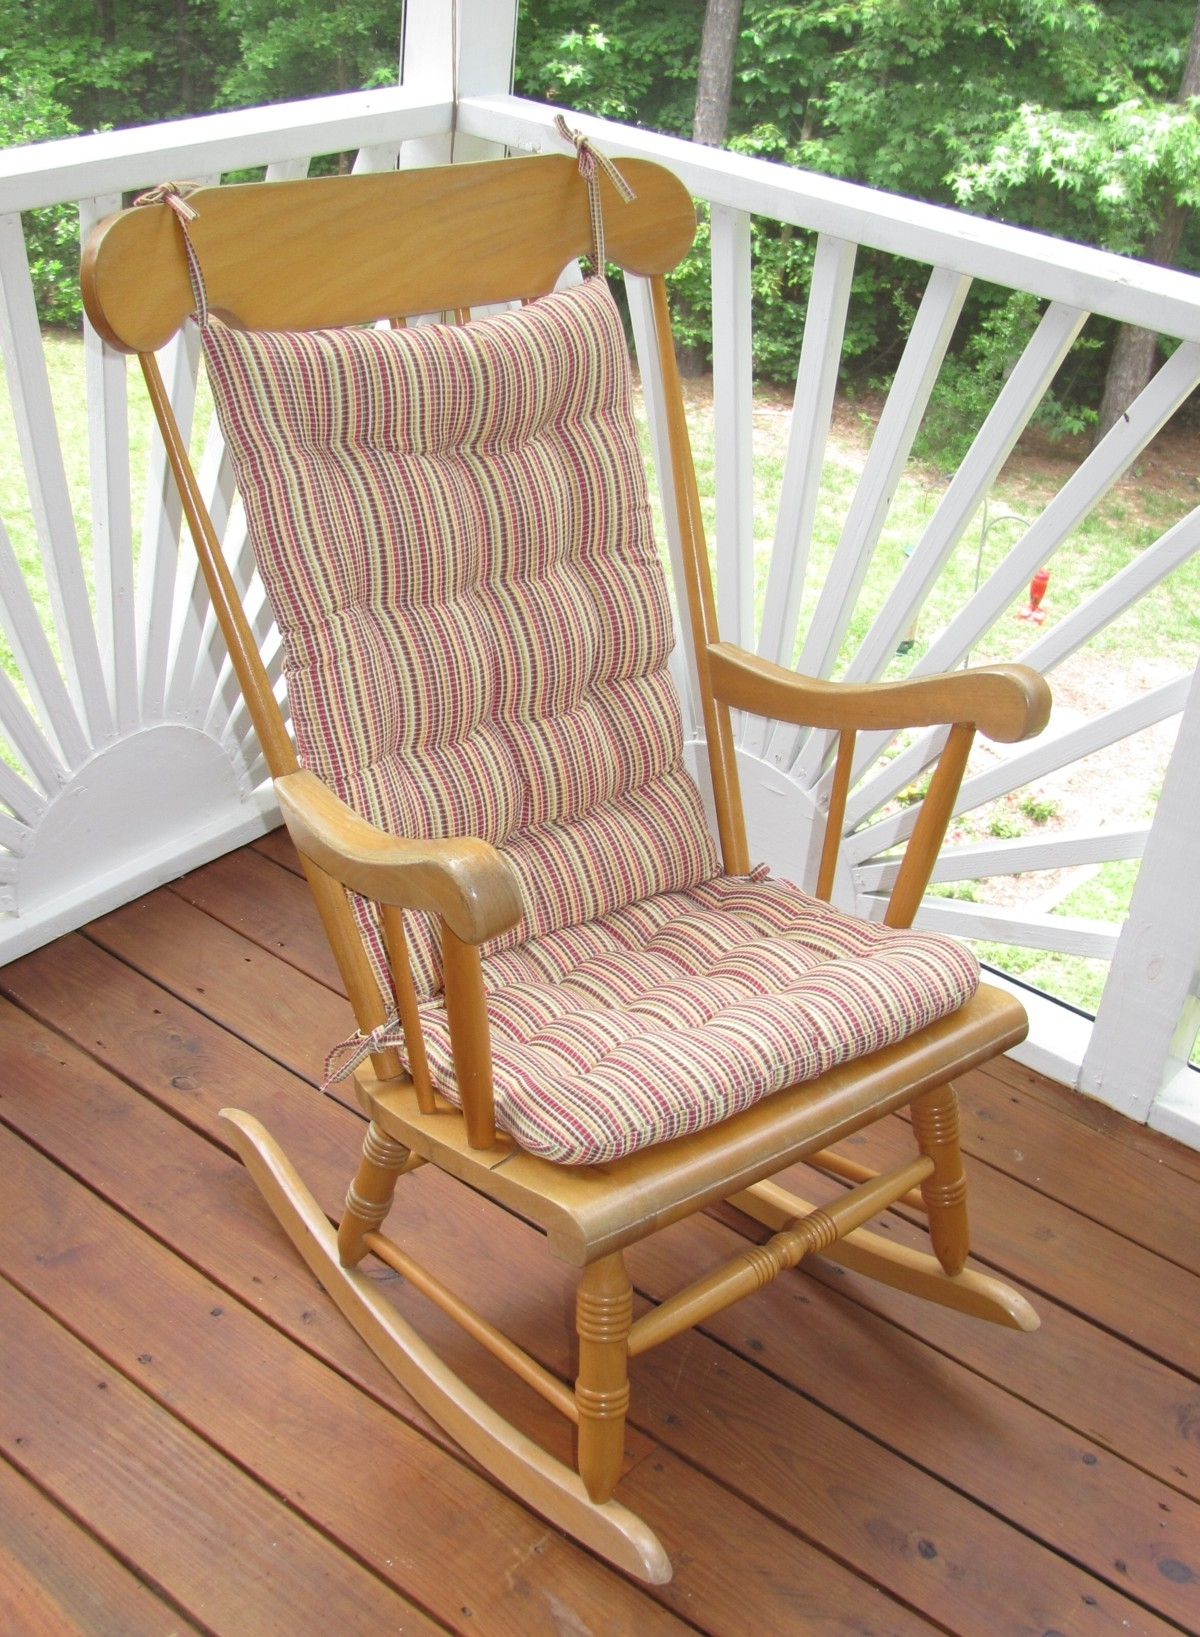 Most Recent Rocking Chair Cushions For Outdoor Regarding Outdoor Rocking Chair Cushions Type : Beautiful Outdoor Rocking (View 9 of 20)